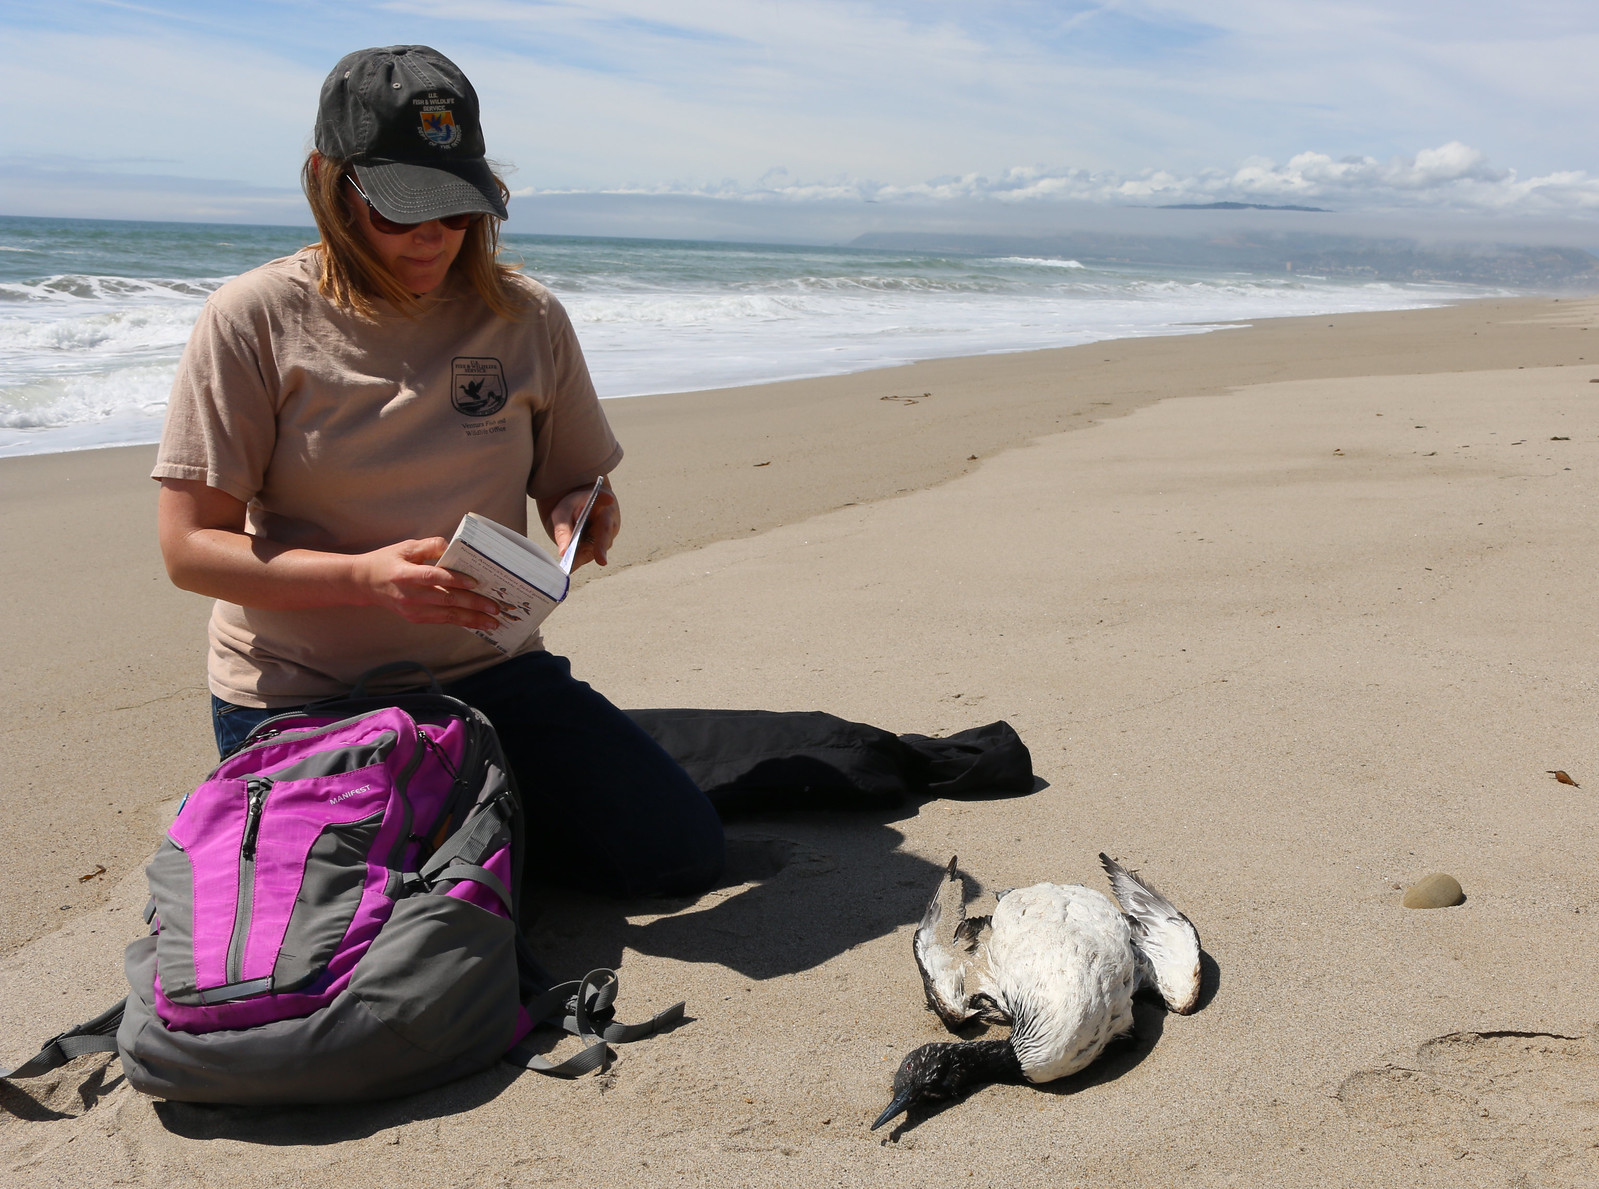 Fish and wildlife biologist Jenny Marek collects data on a Pacific loon found on Ventura County beach. Photo by Hazel Rodriguez/USFWS.